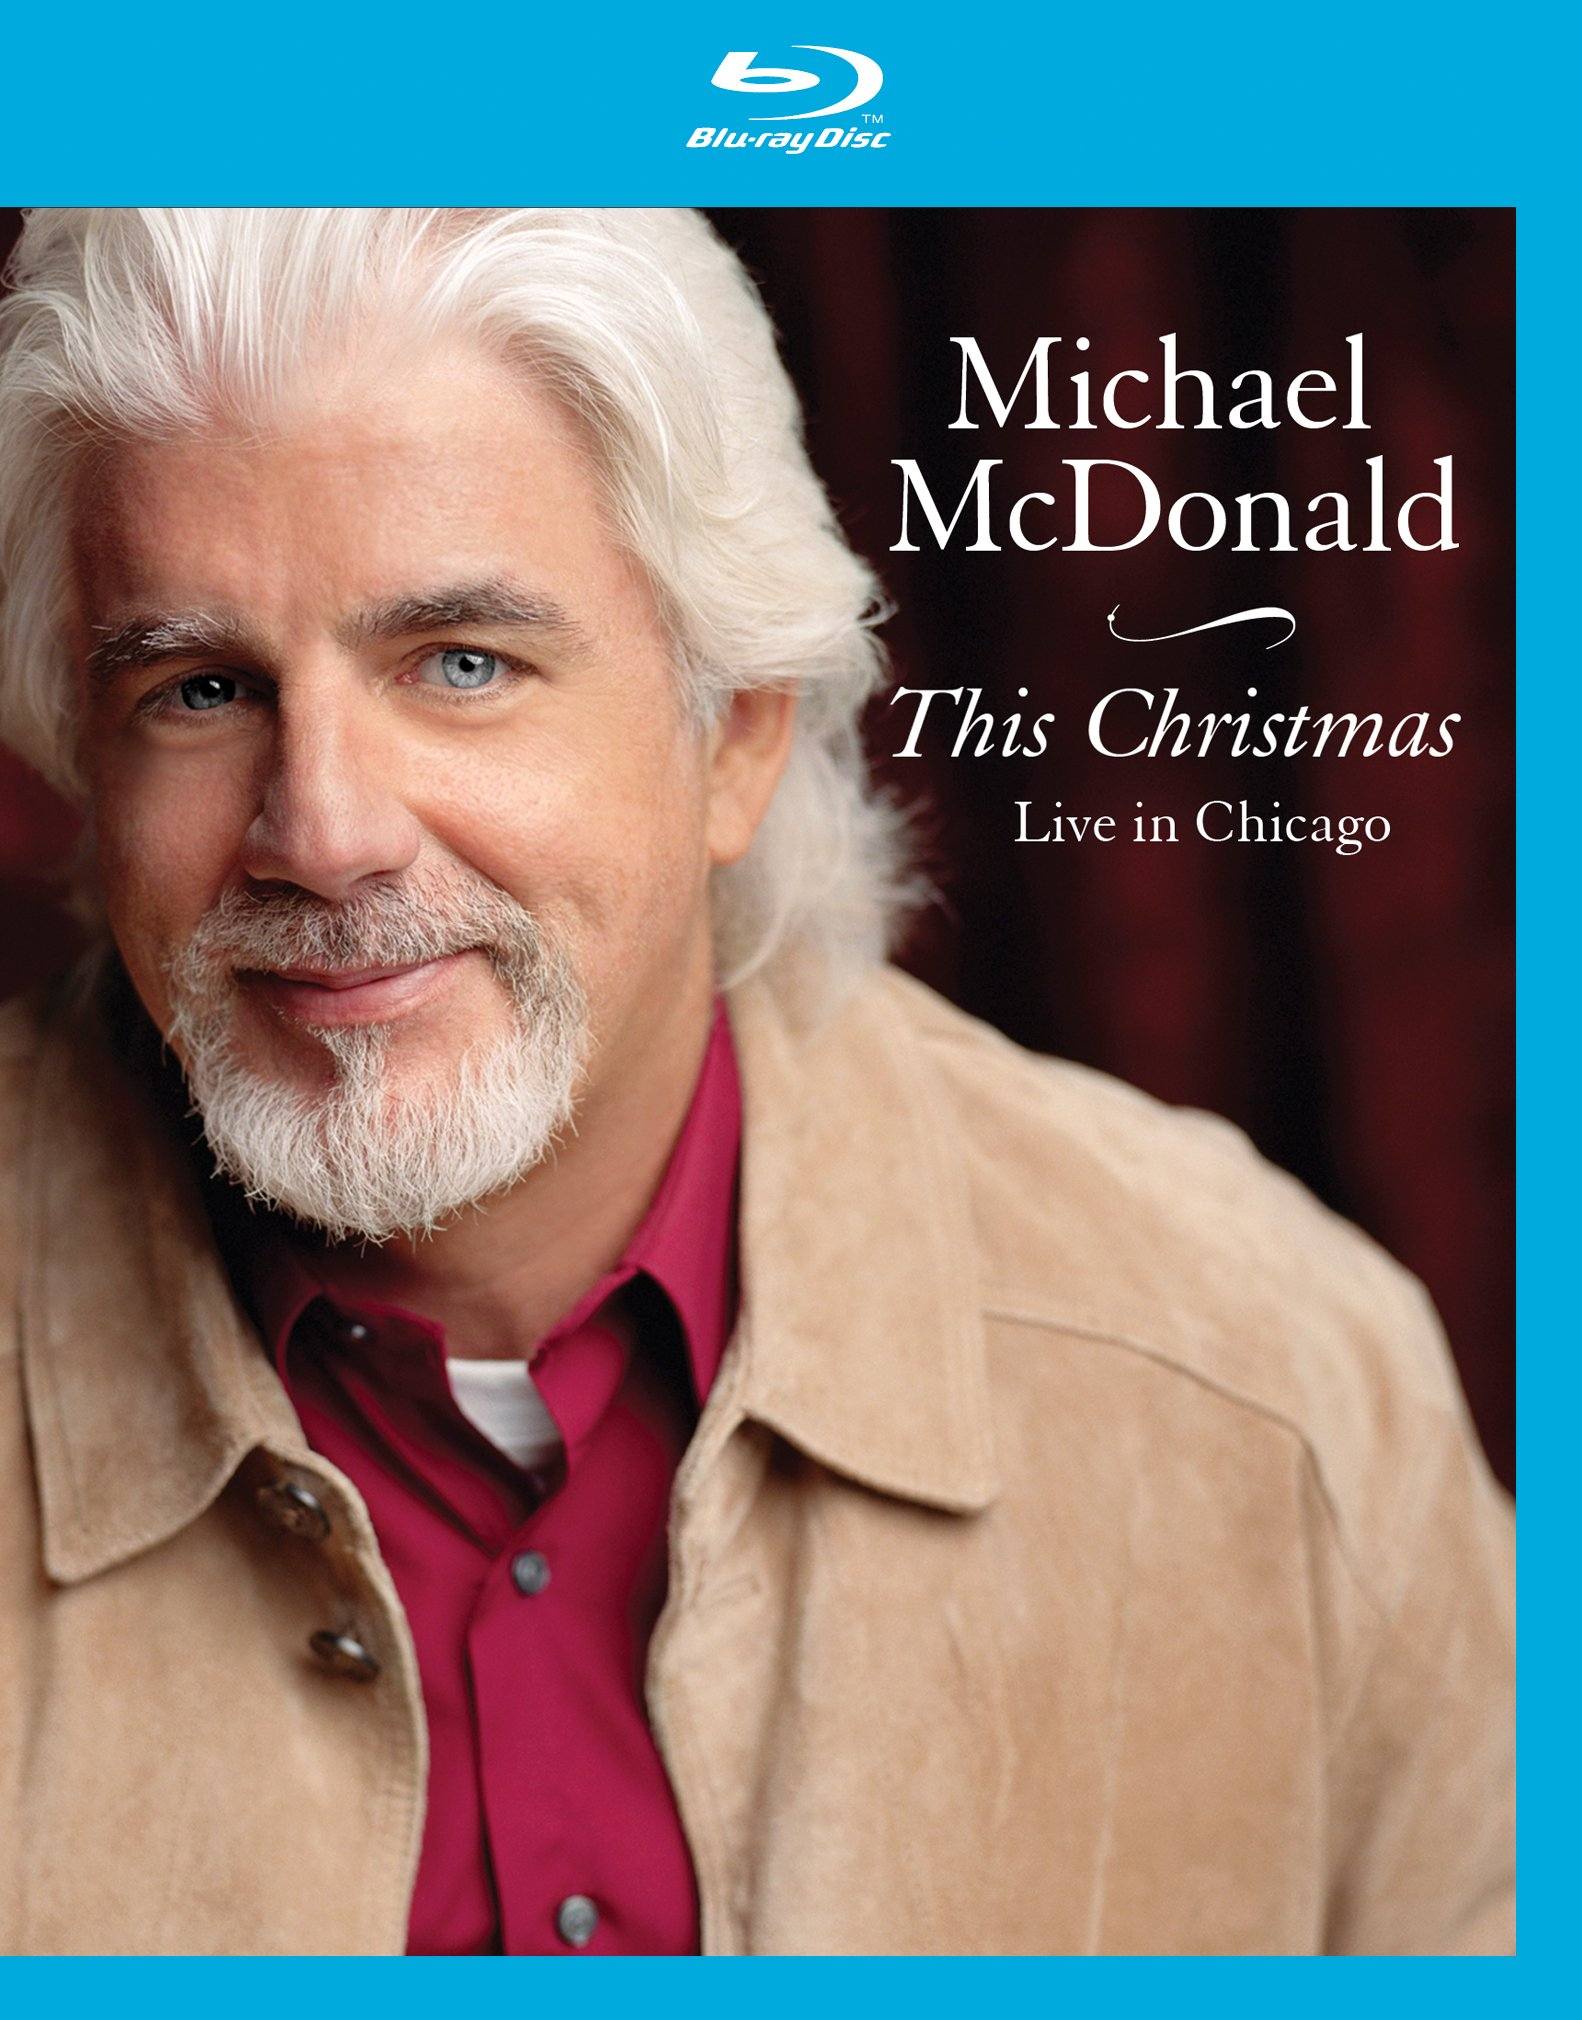 Michael McDonald - This Christmas Live in Chicago (Blu-ray)